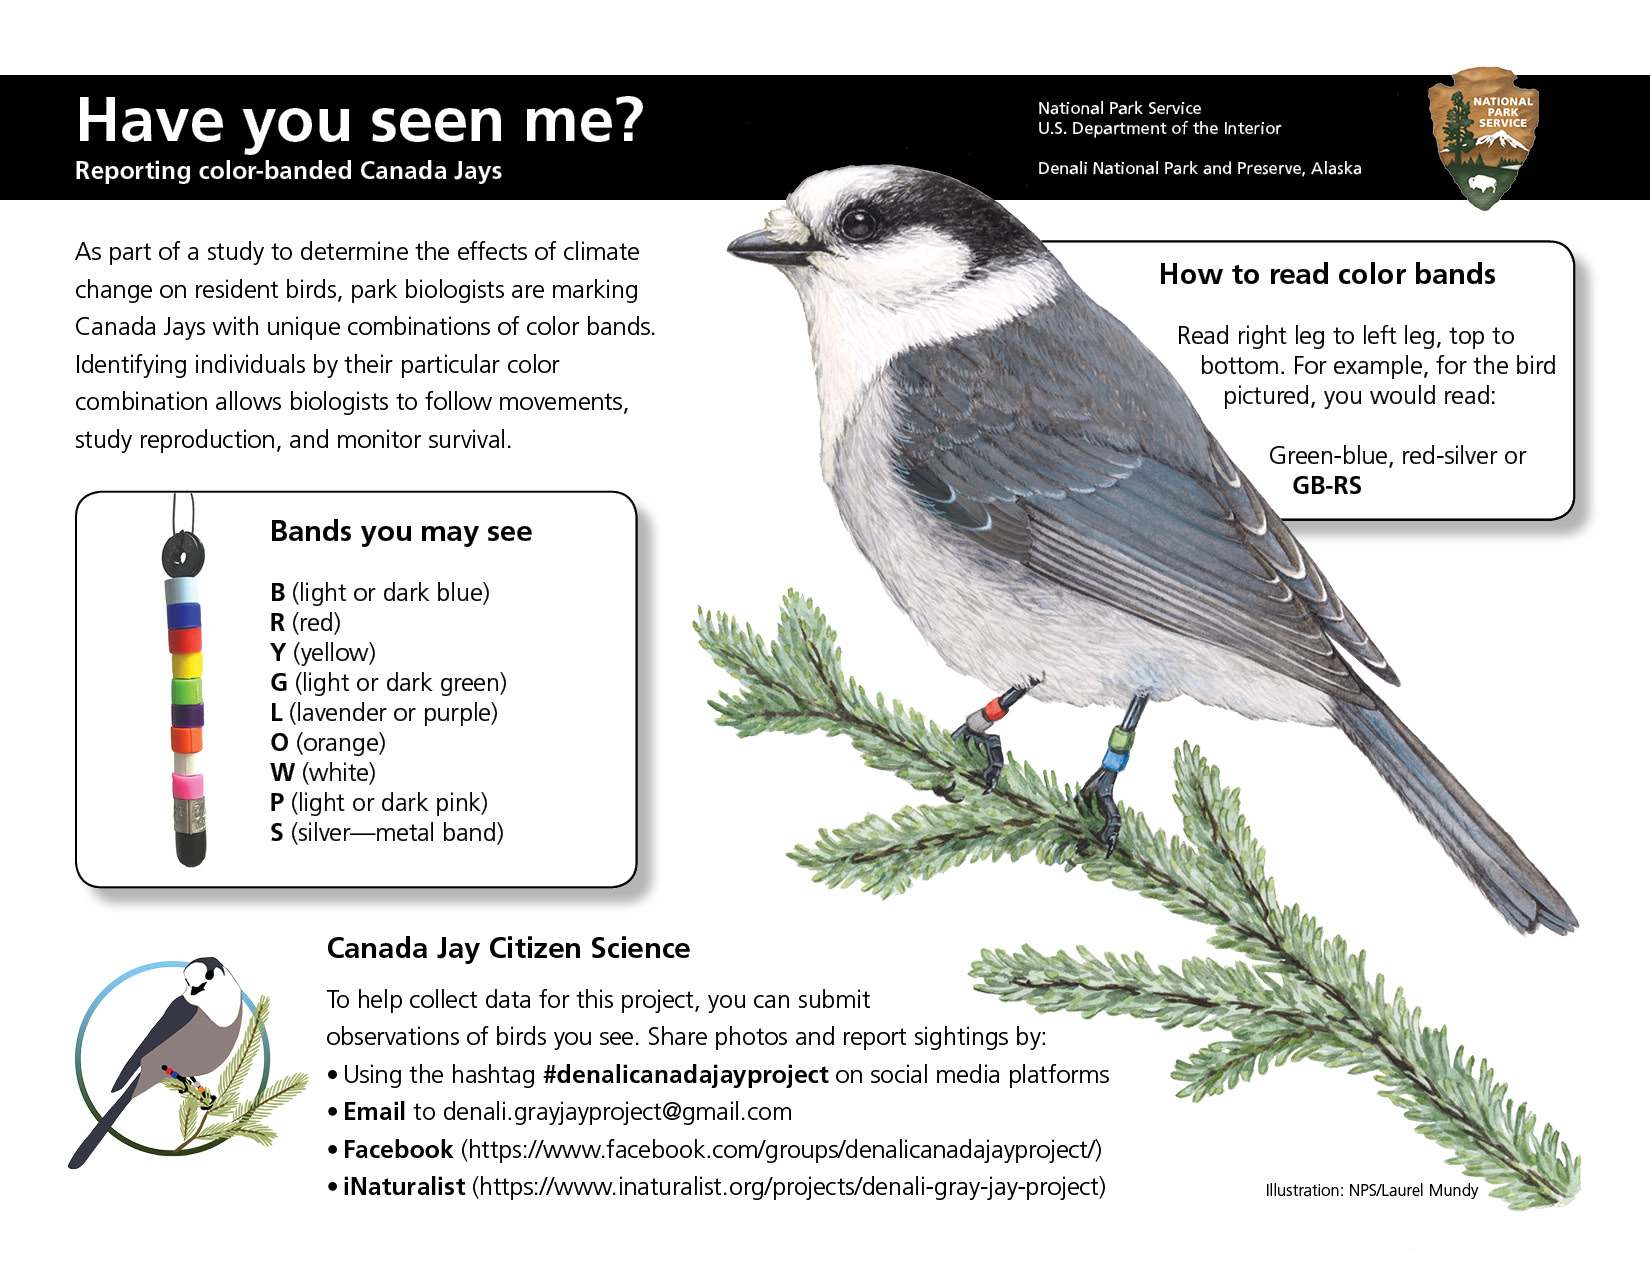 Canada Jay research outreach poster